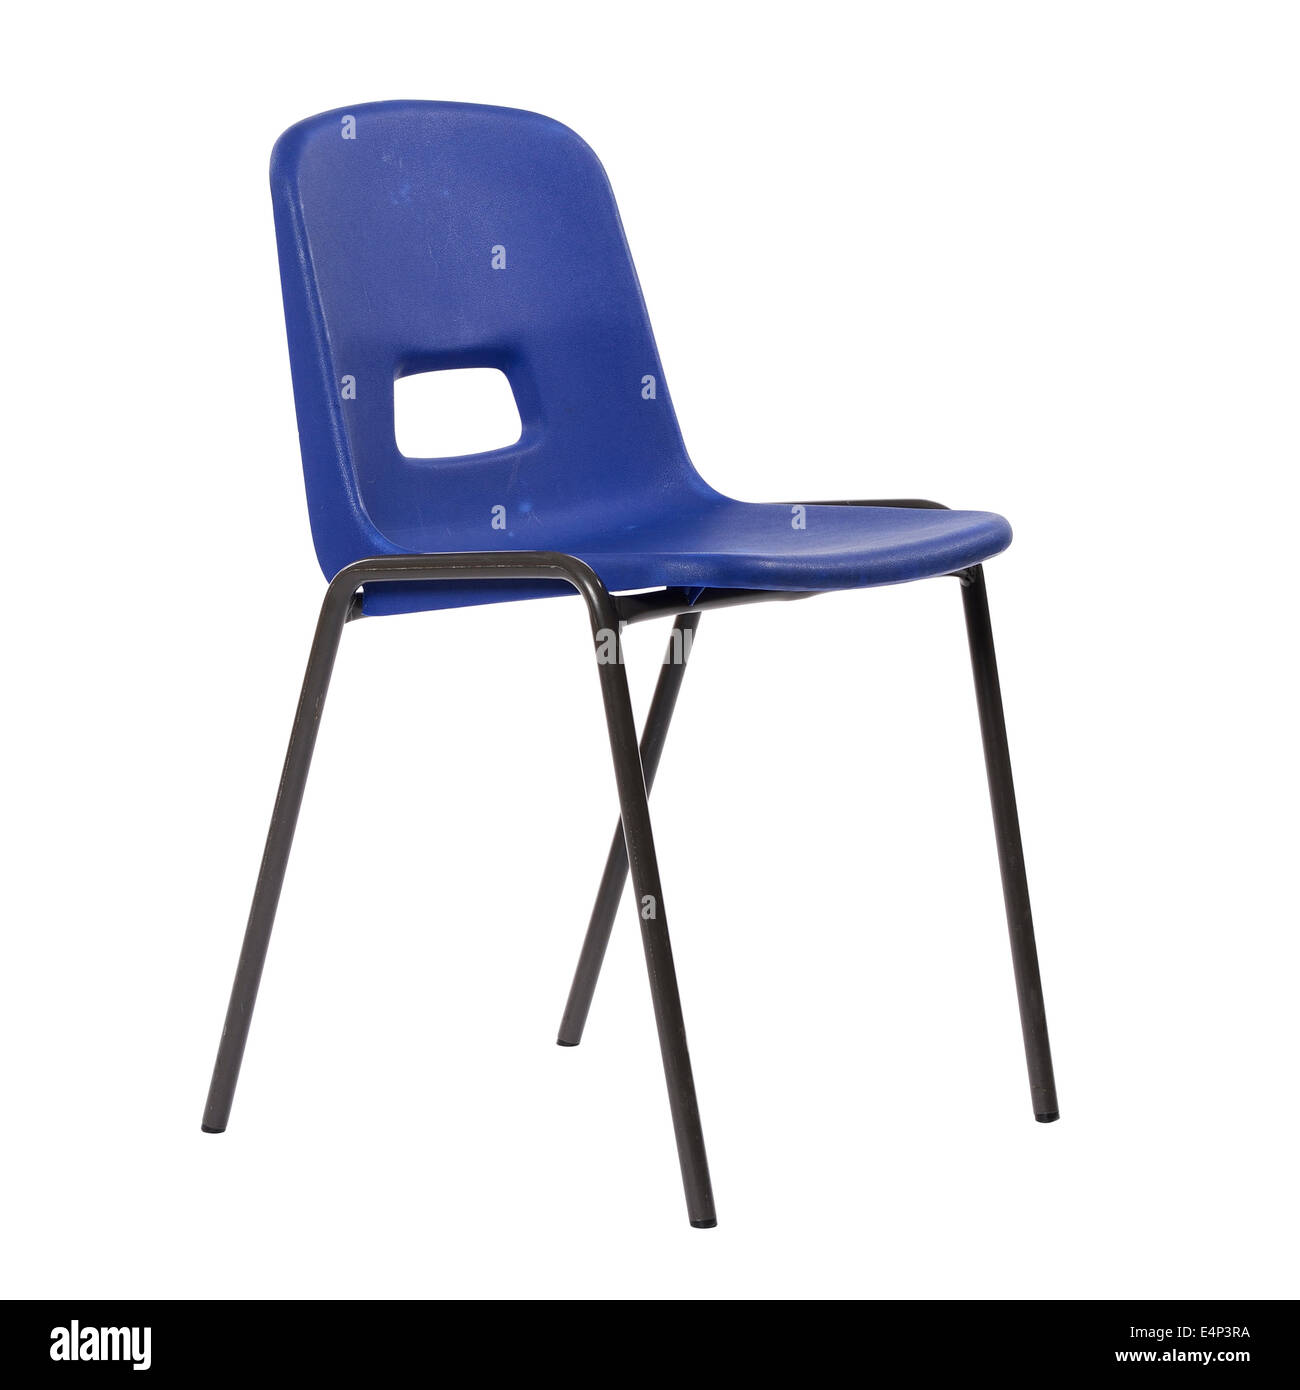 Blue plastic stacking school chair - Stock Image